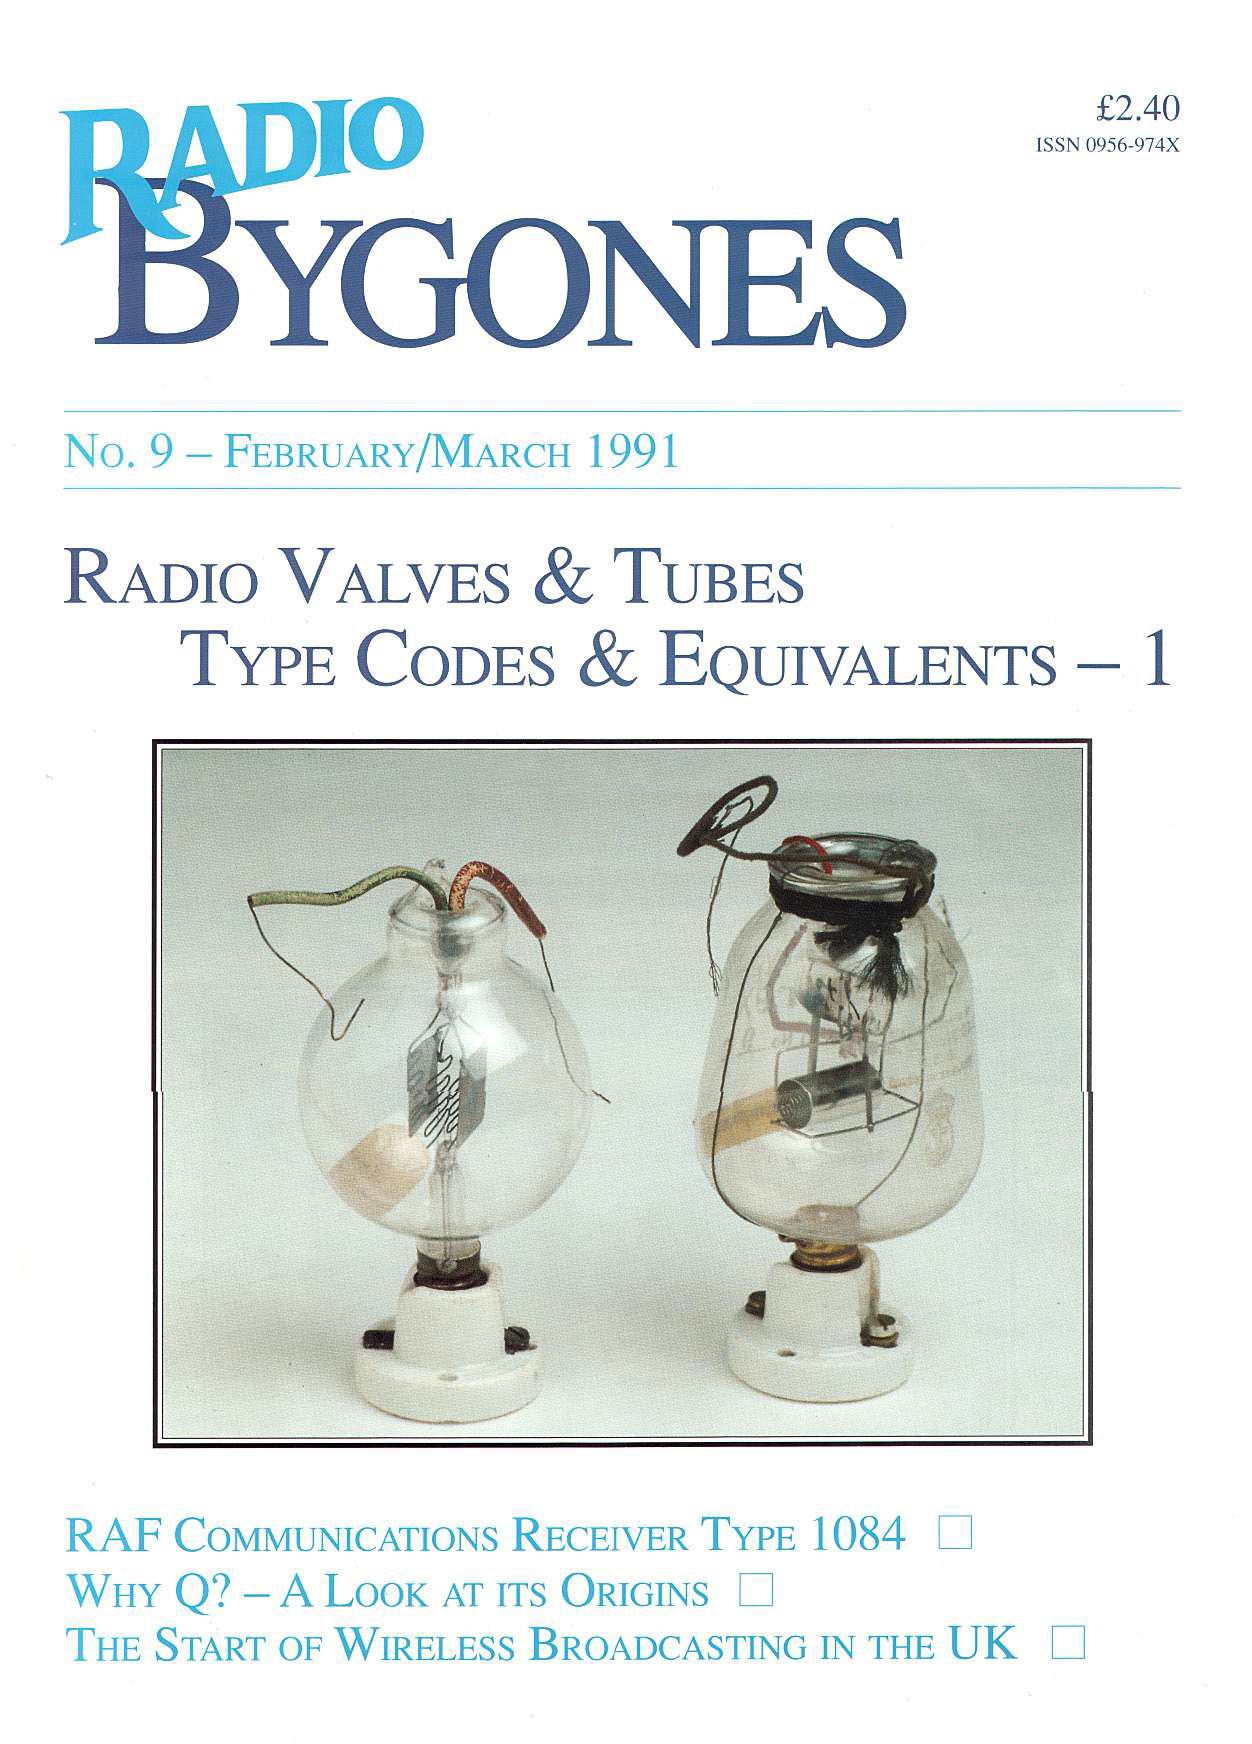 Radio Bygones Issue 9 - PDF